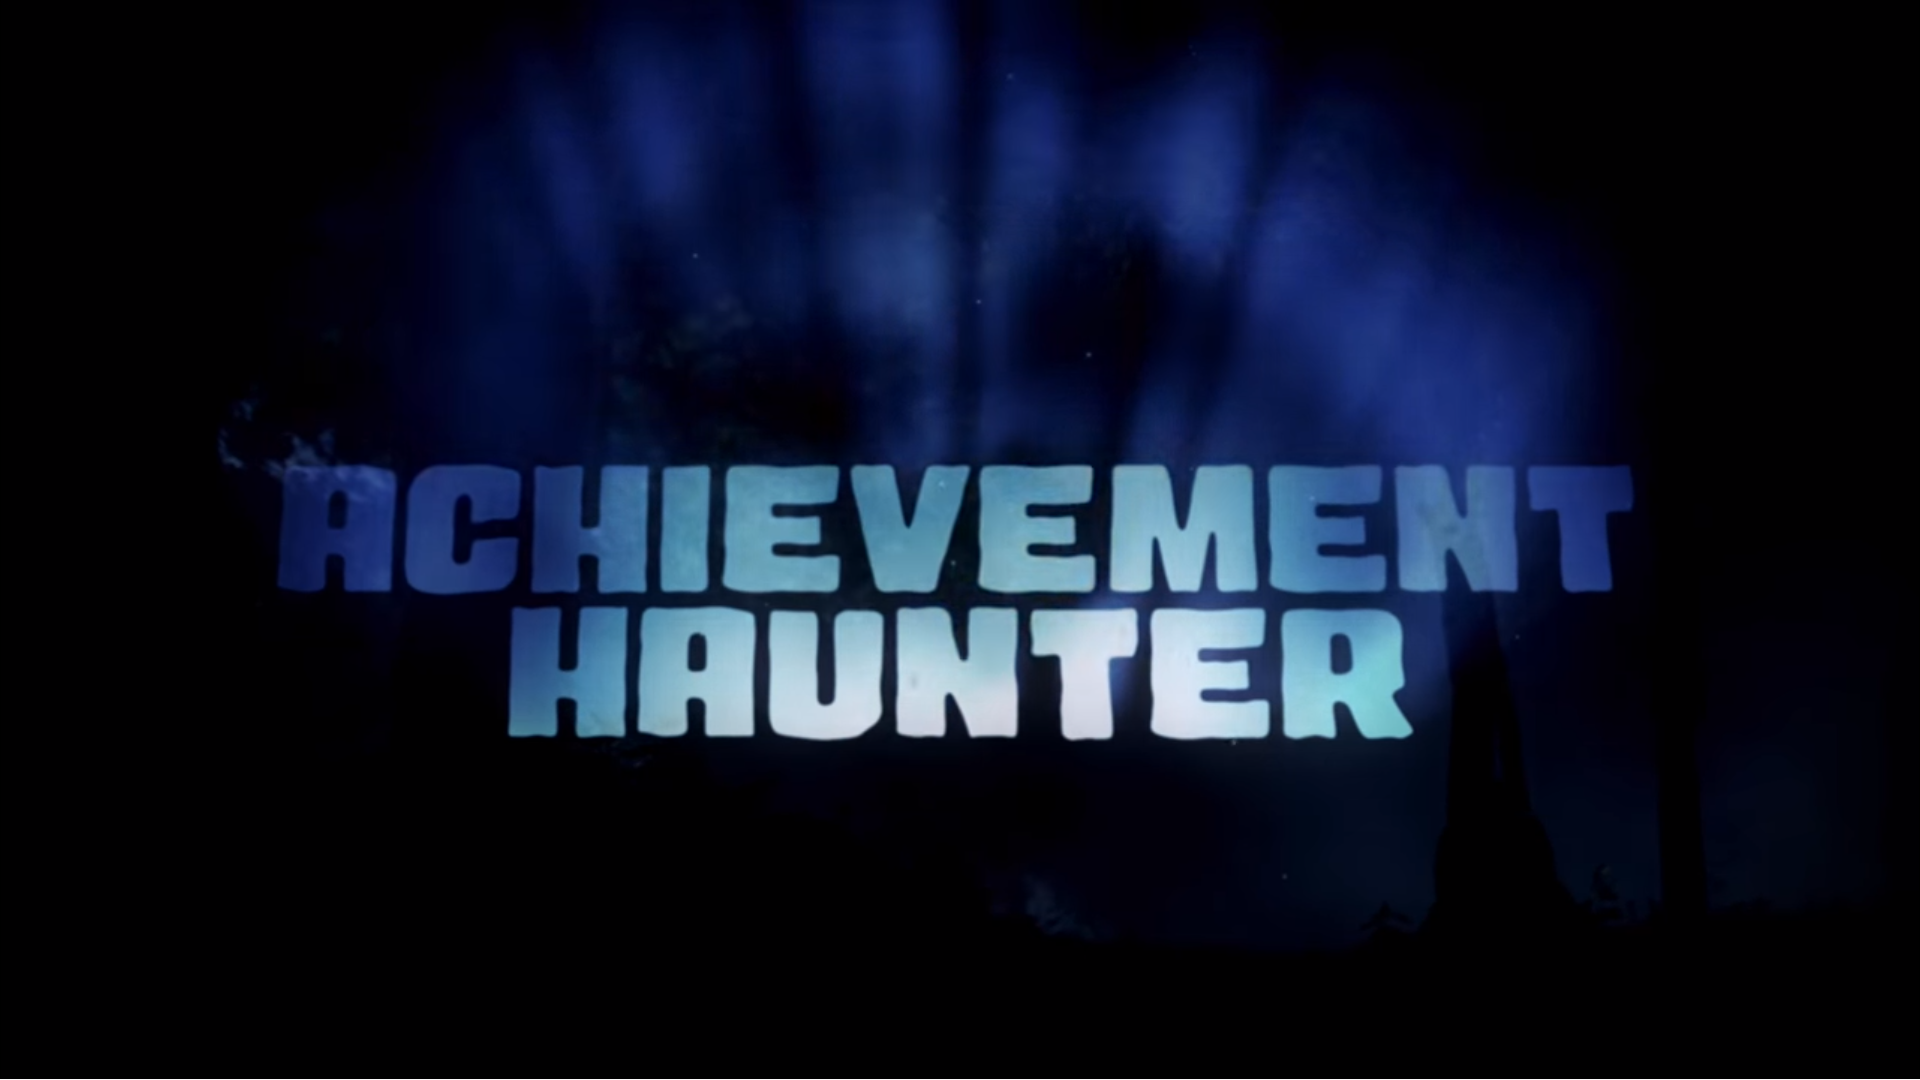 Achievement Haunter